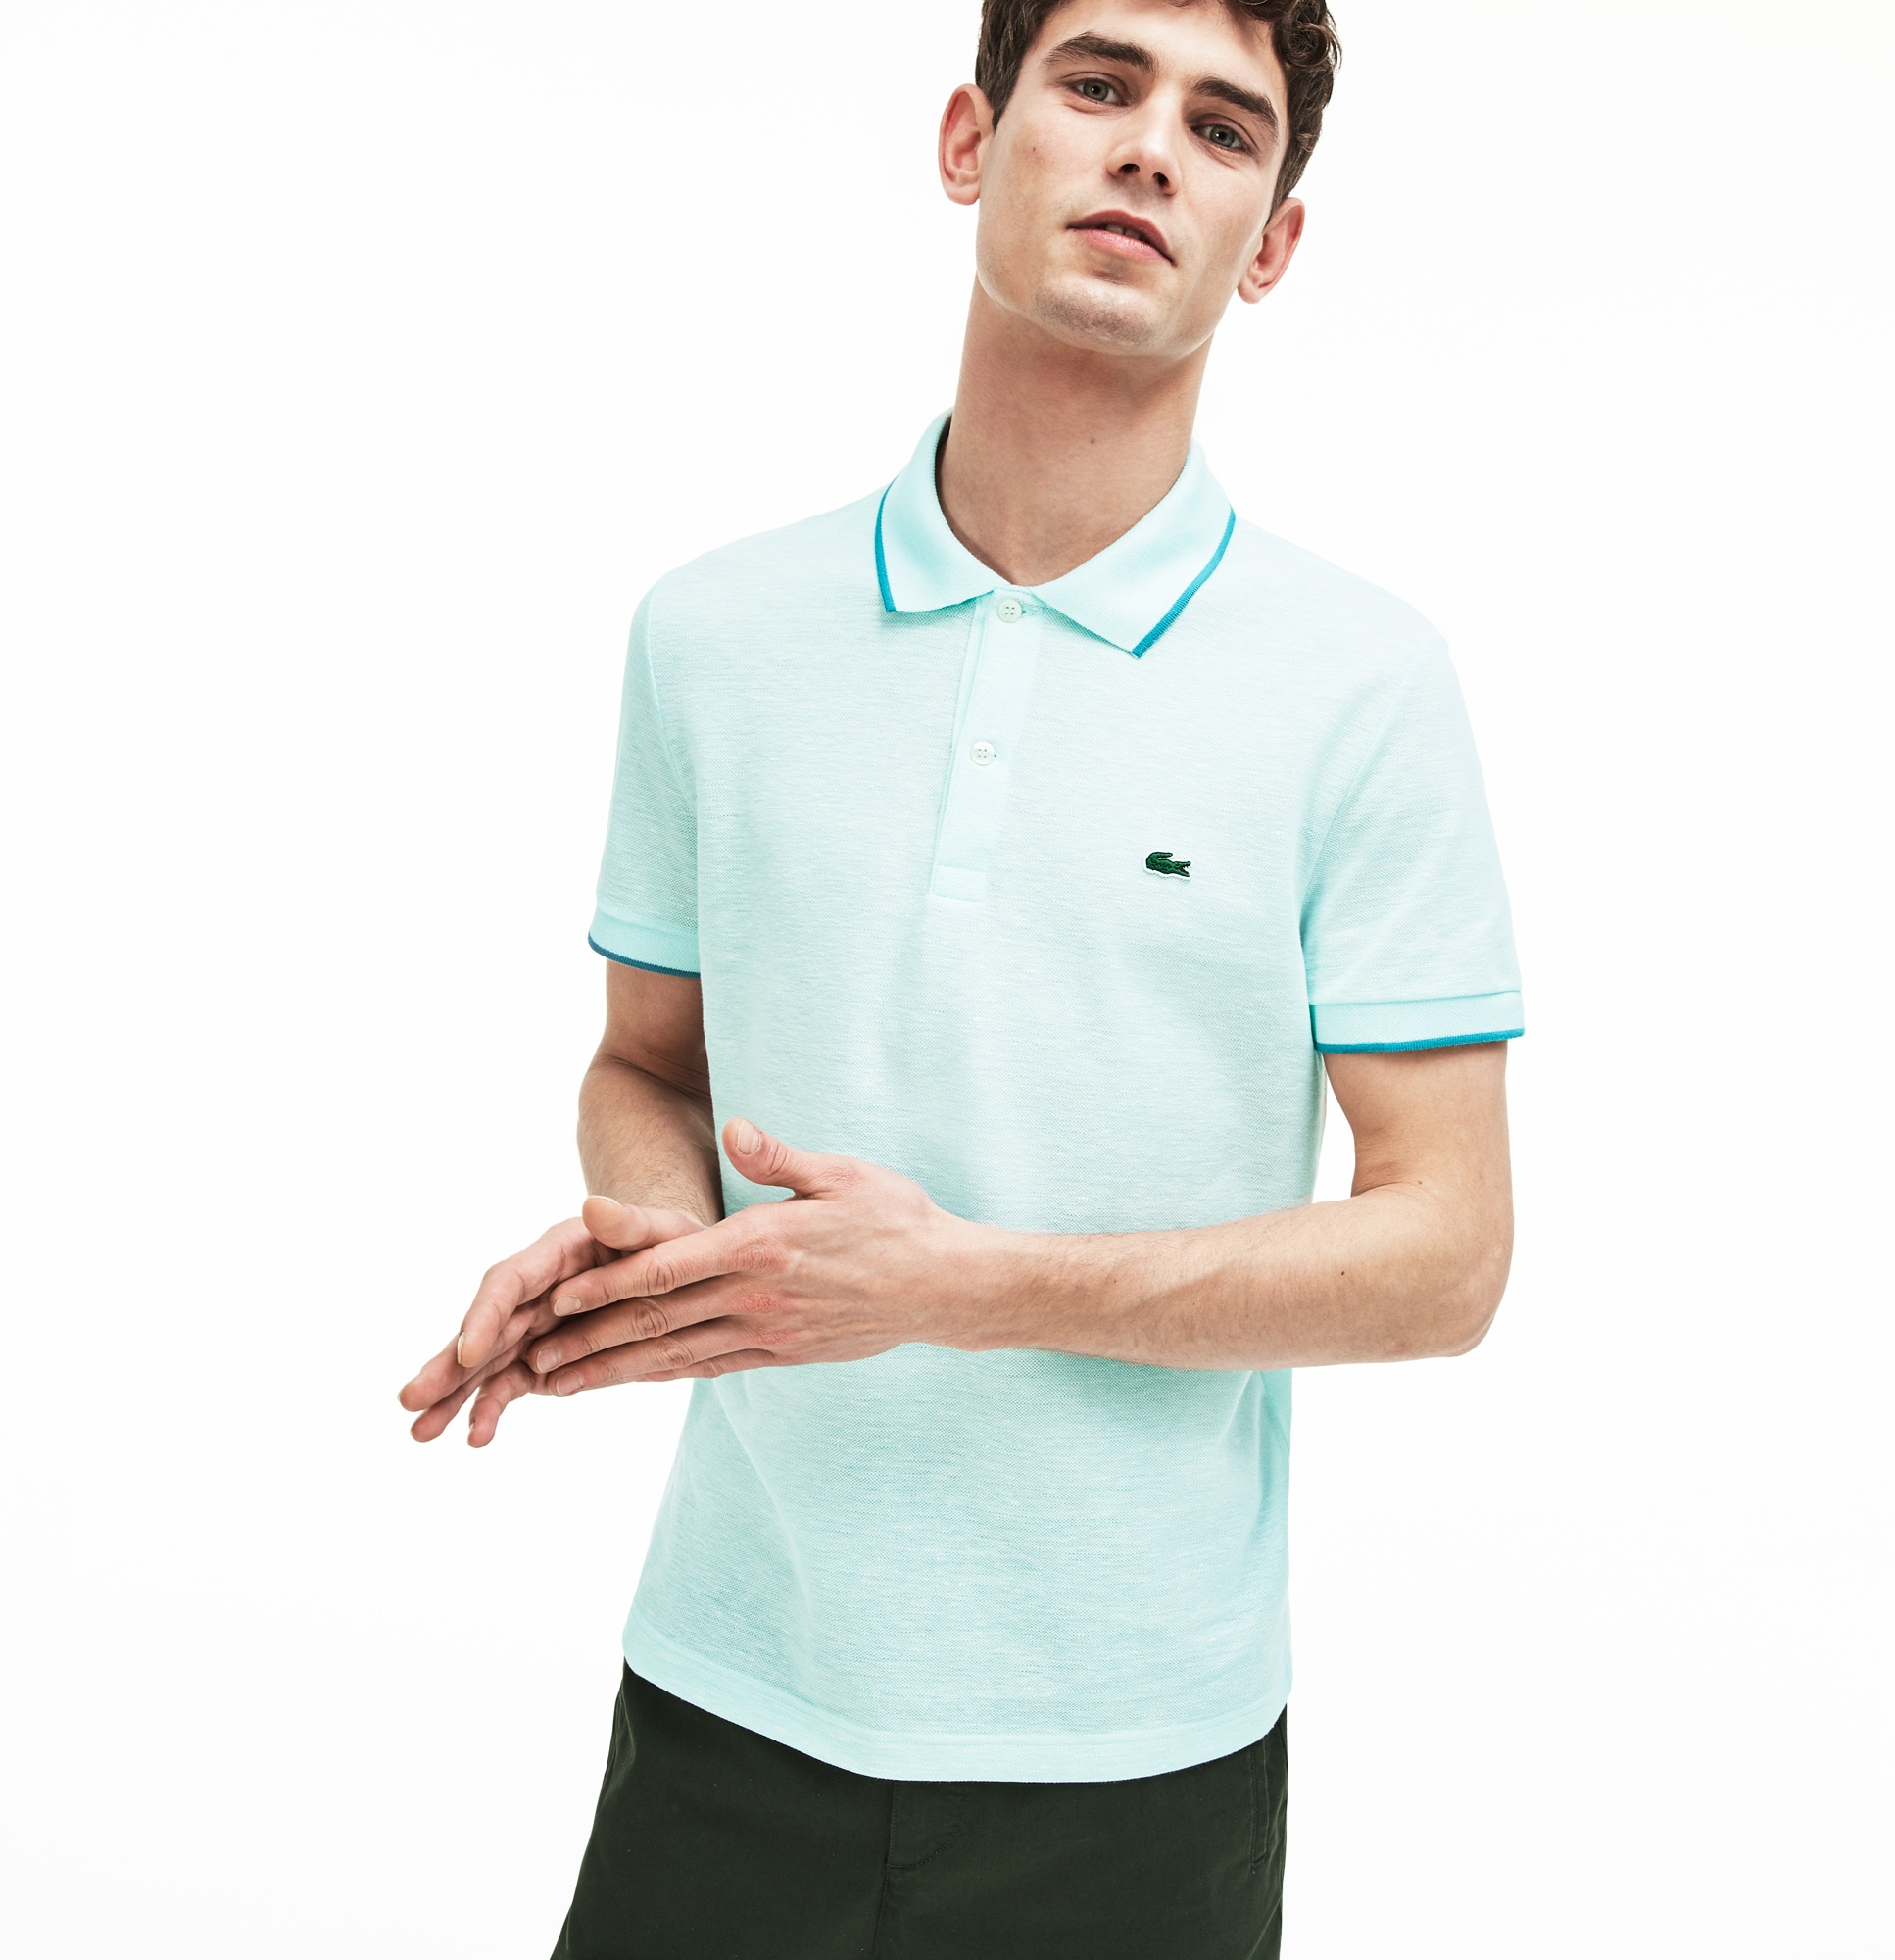 Polo Shirts on Sale | The Lacoste Polo Shirt Sale | LACOSTE